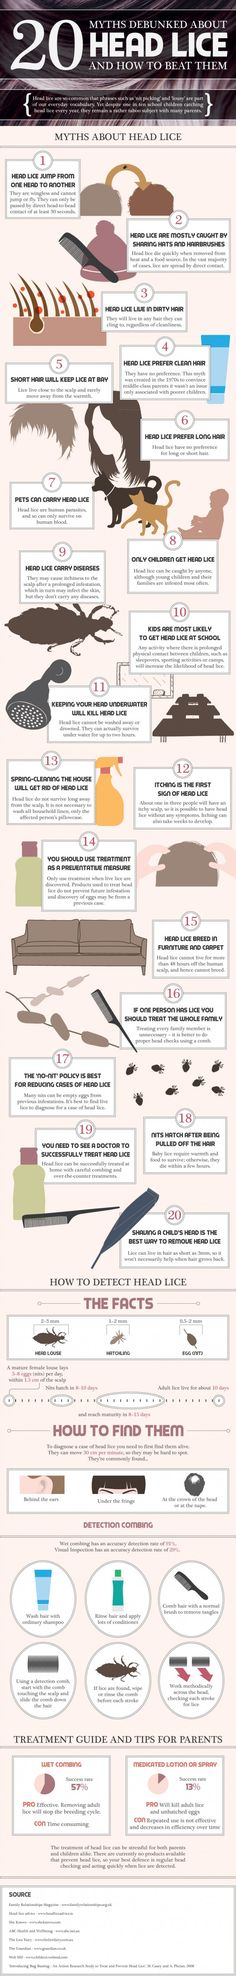 20 Facts About Headlice [Infographic]  For future reference... Hopefully I won't need it!!!